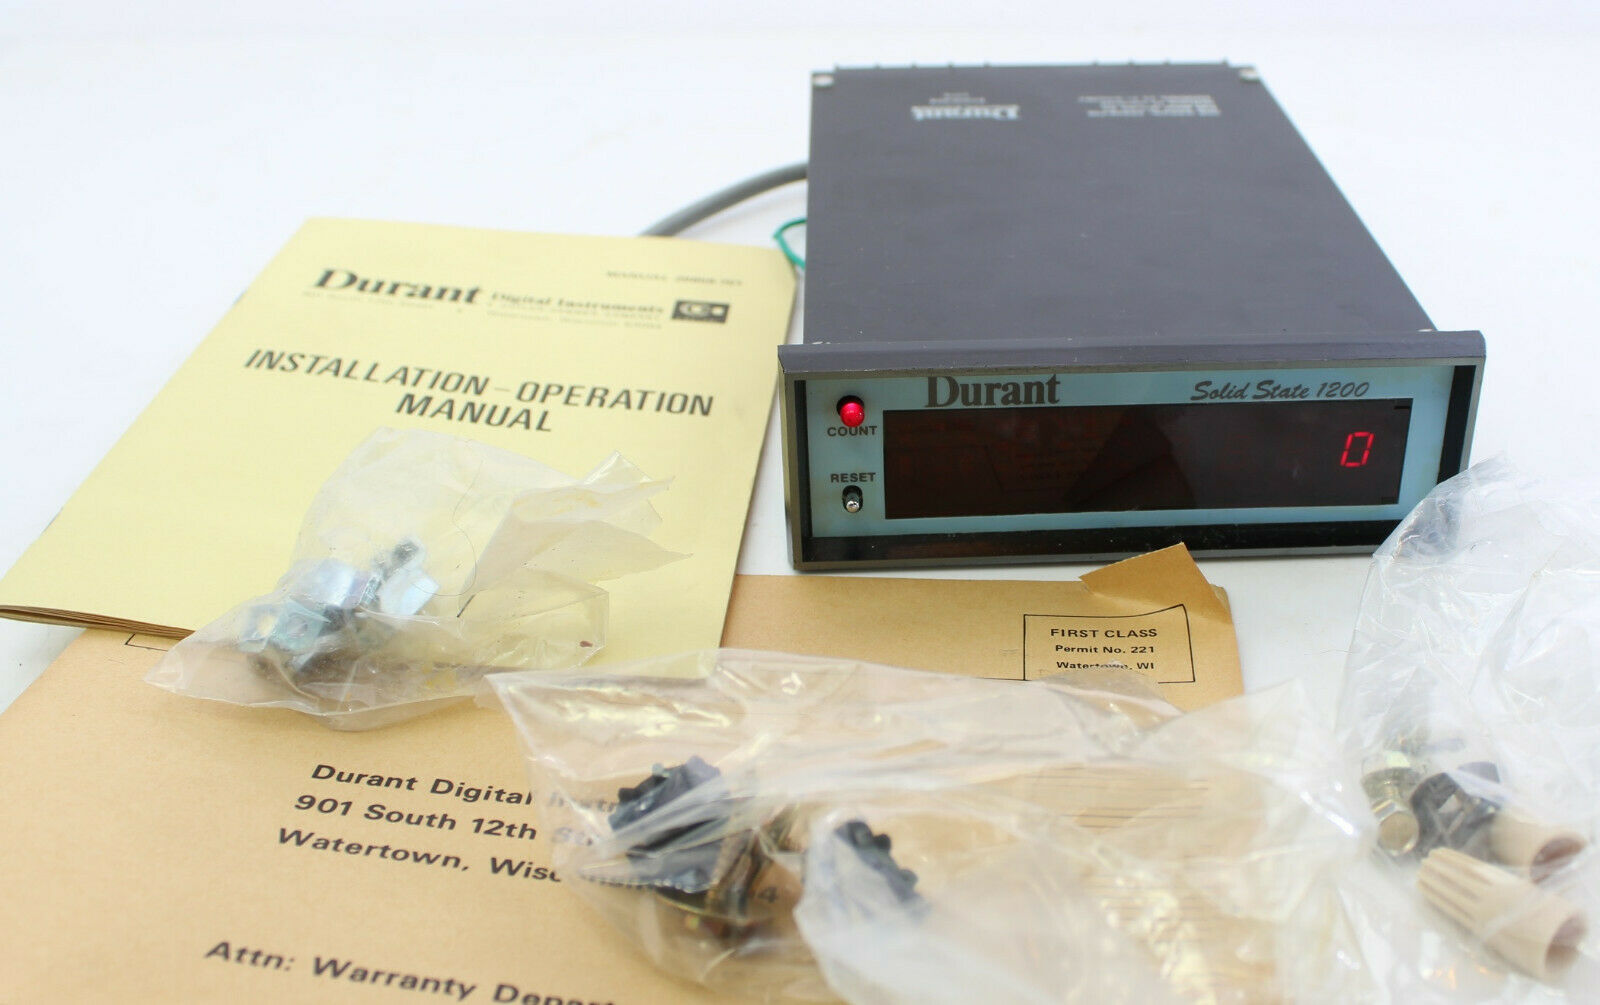 Durant Solid State 1200 51200-004 1274 Counter Totalizer Digital